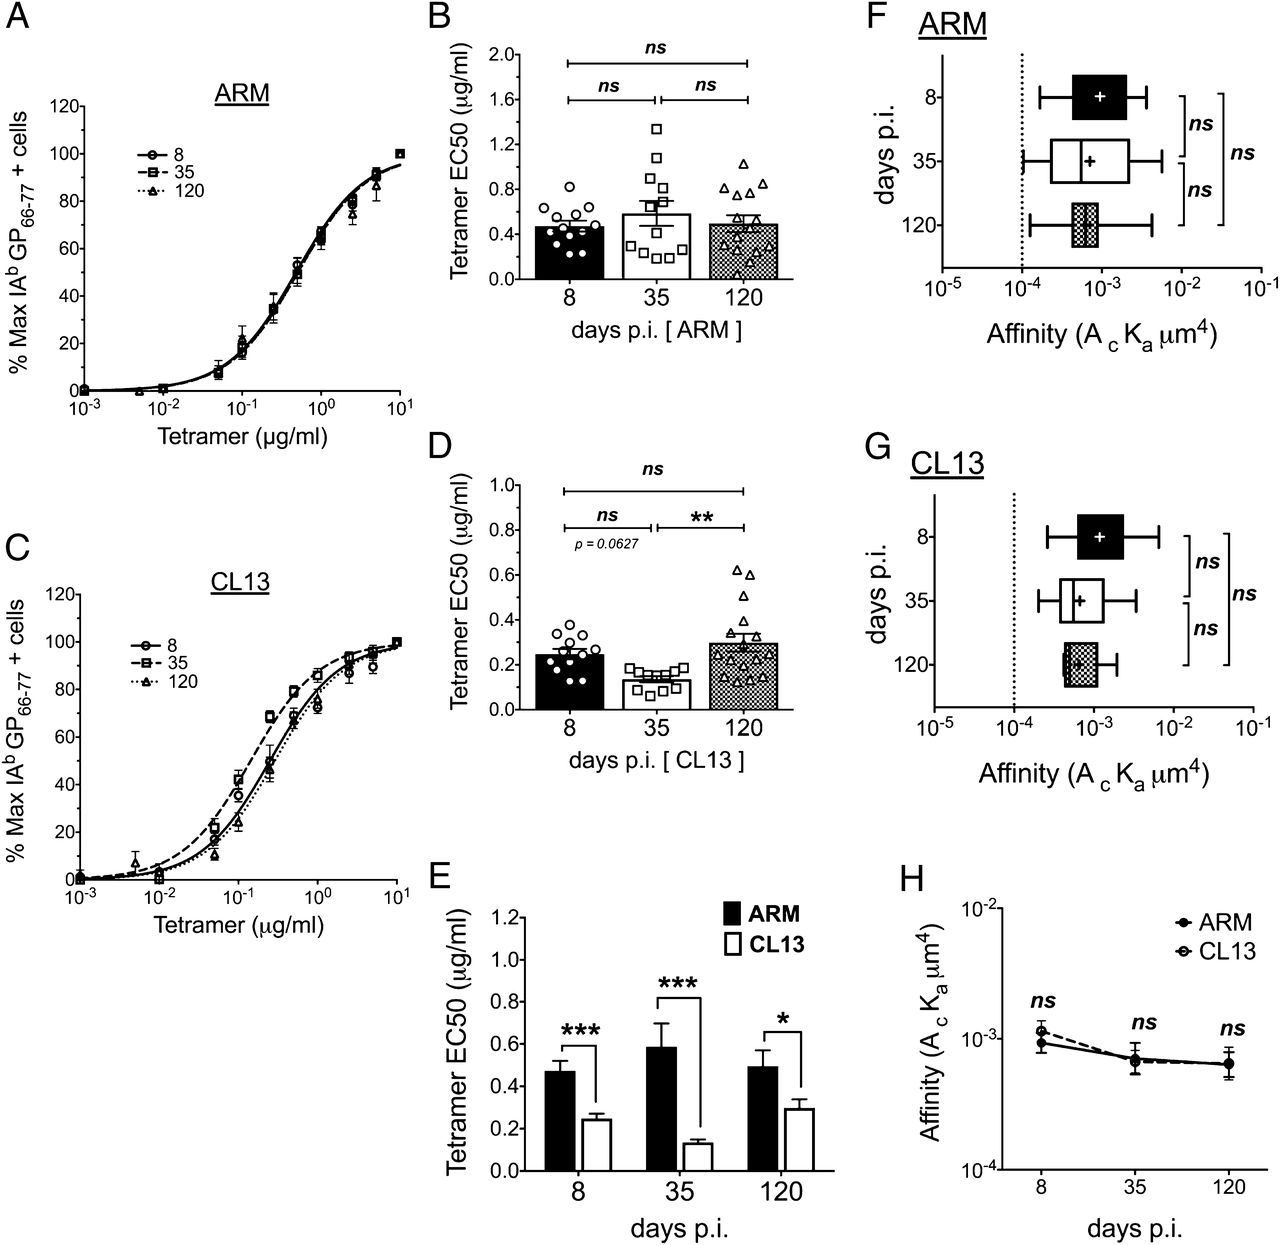 Cd4 T Cell Affinity Diversity Is Equally Maintained During Acute And Friend Description Ev Electrical Wiring Diagrams Schematics Download Figure